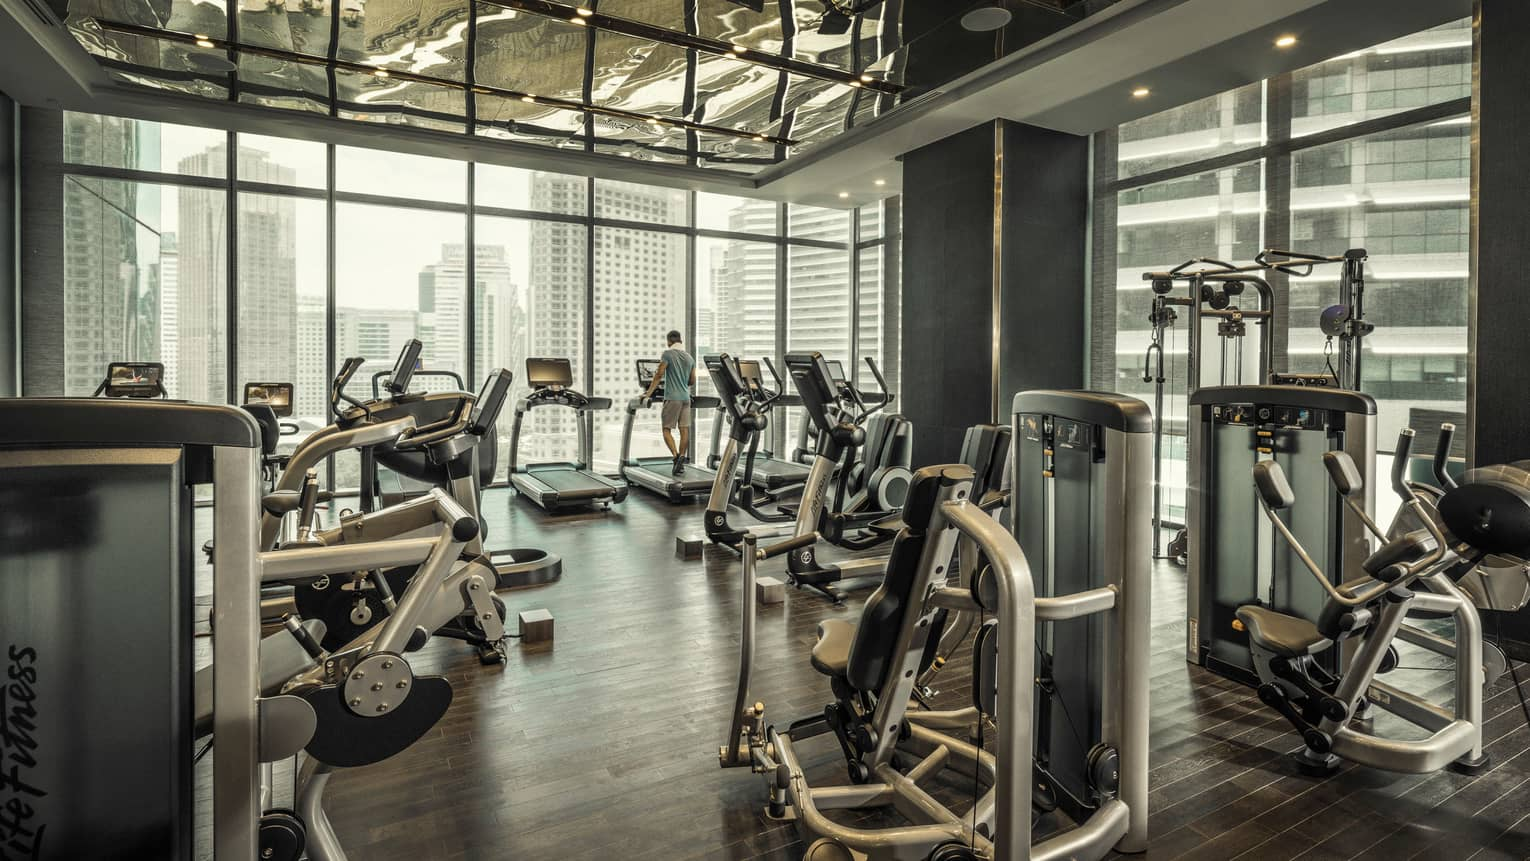 Fitness centre that looks out on the city skyline